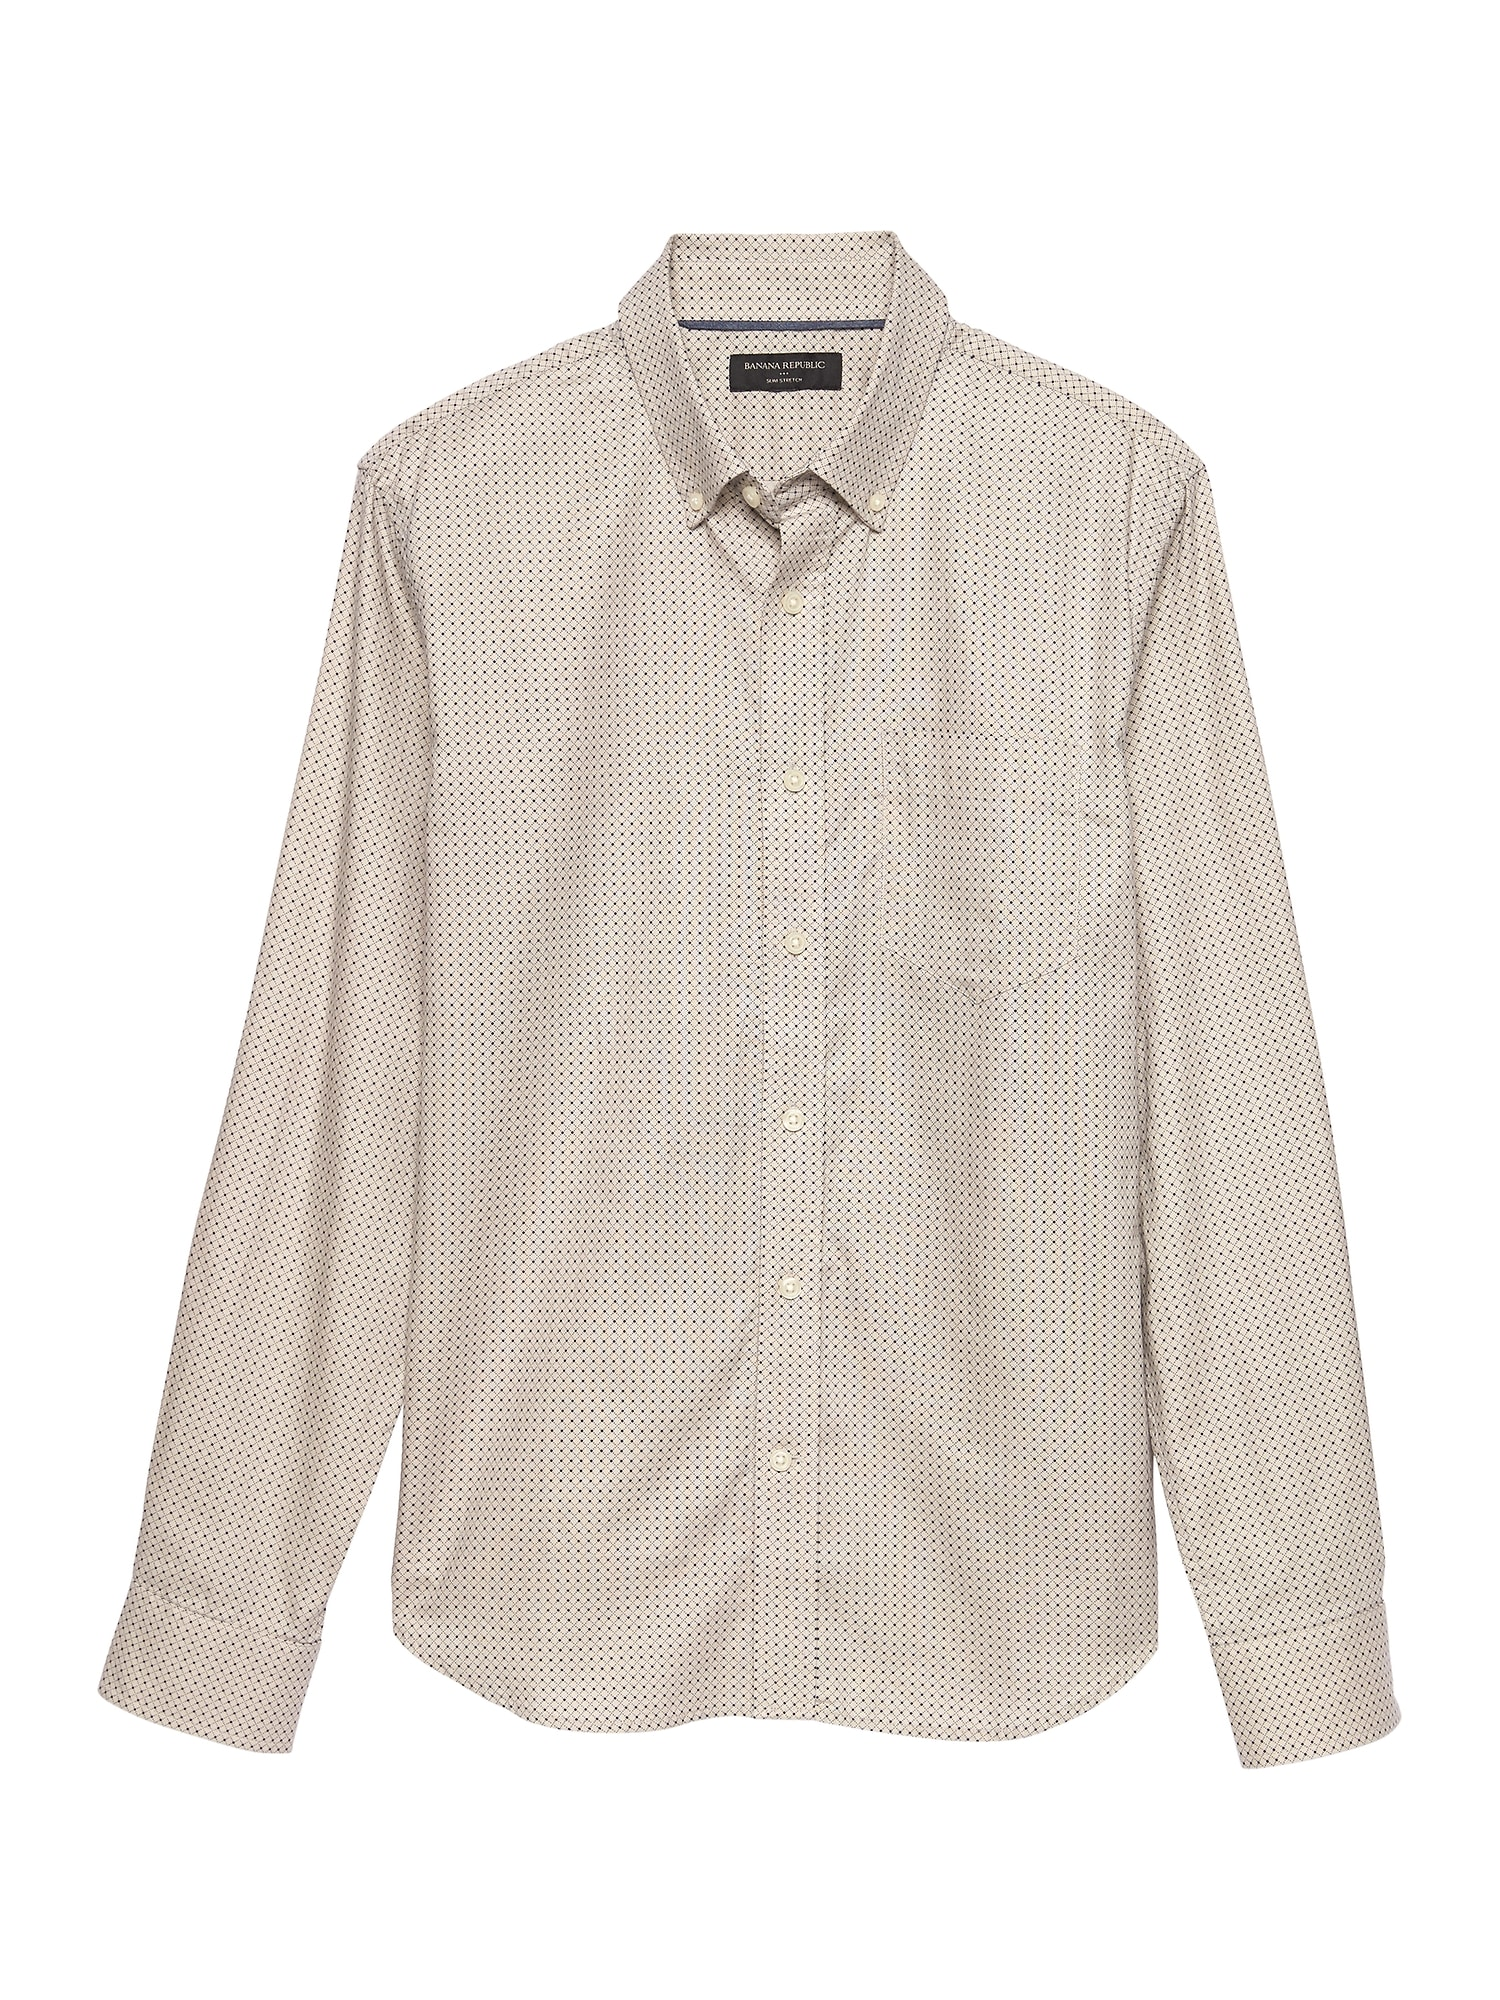 Slim Fit Untucked Oxford Shirt Banana Republic Factory